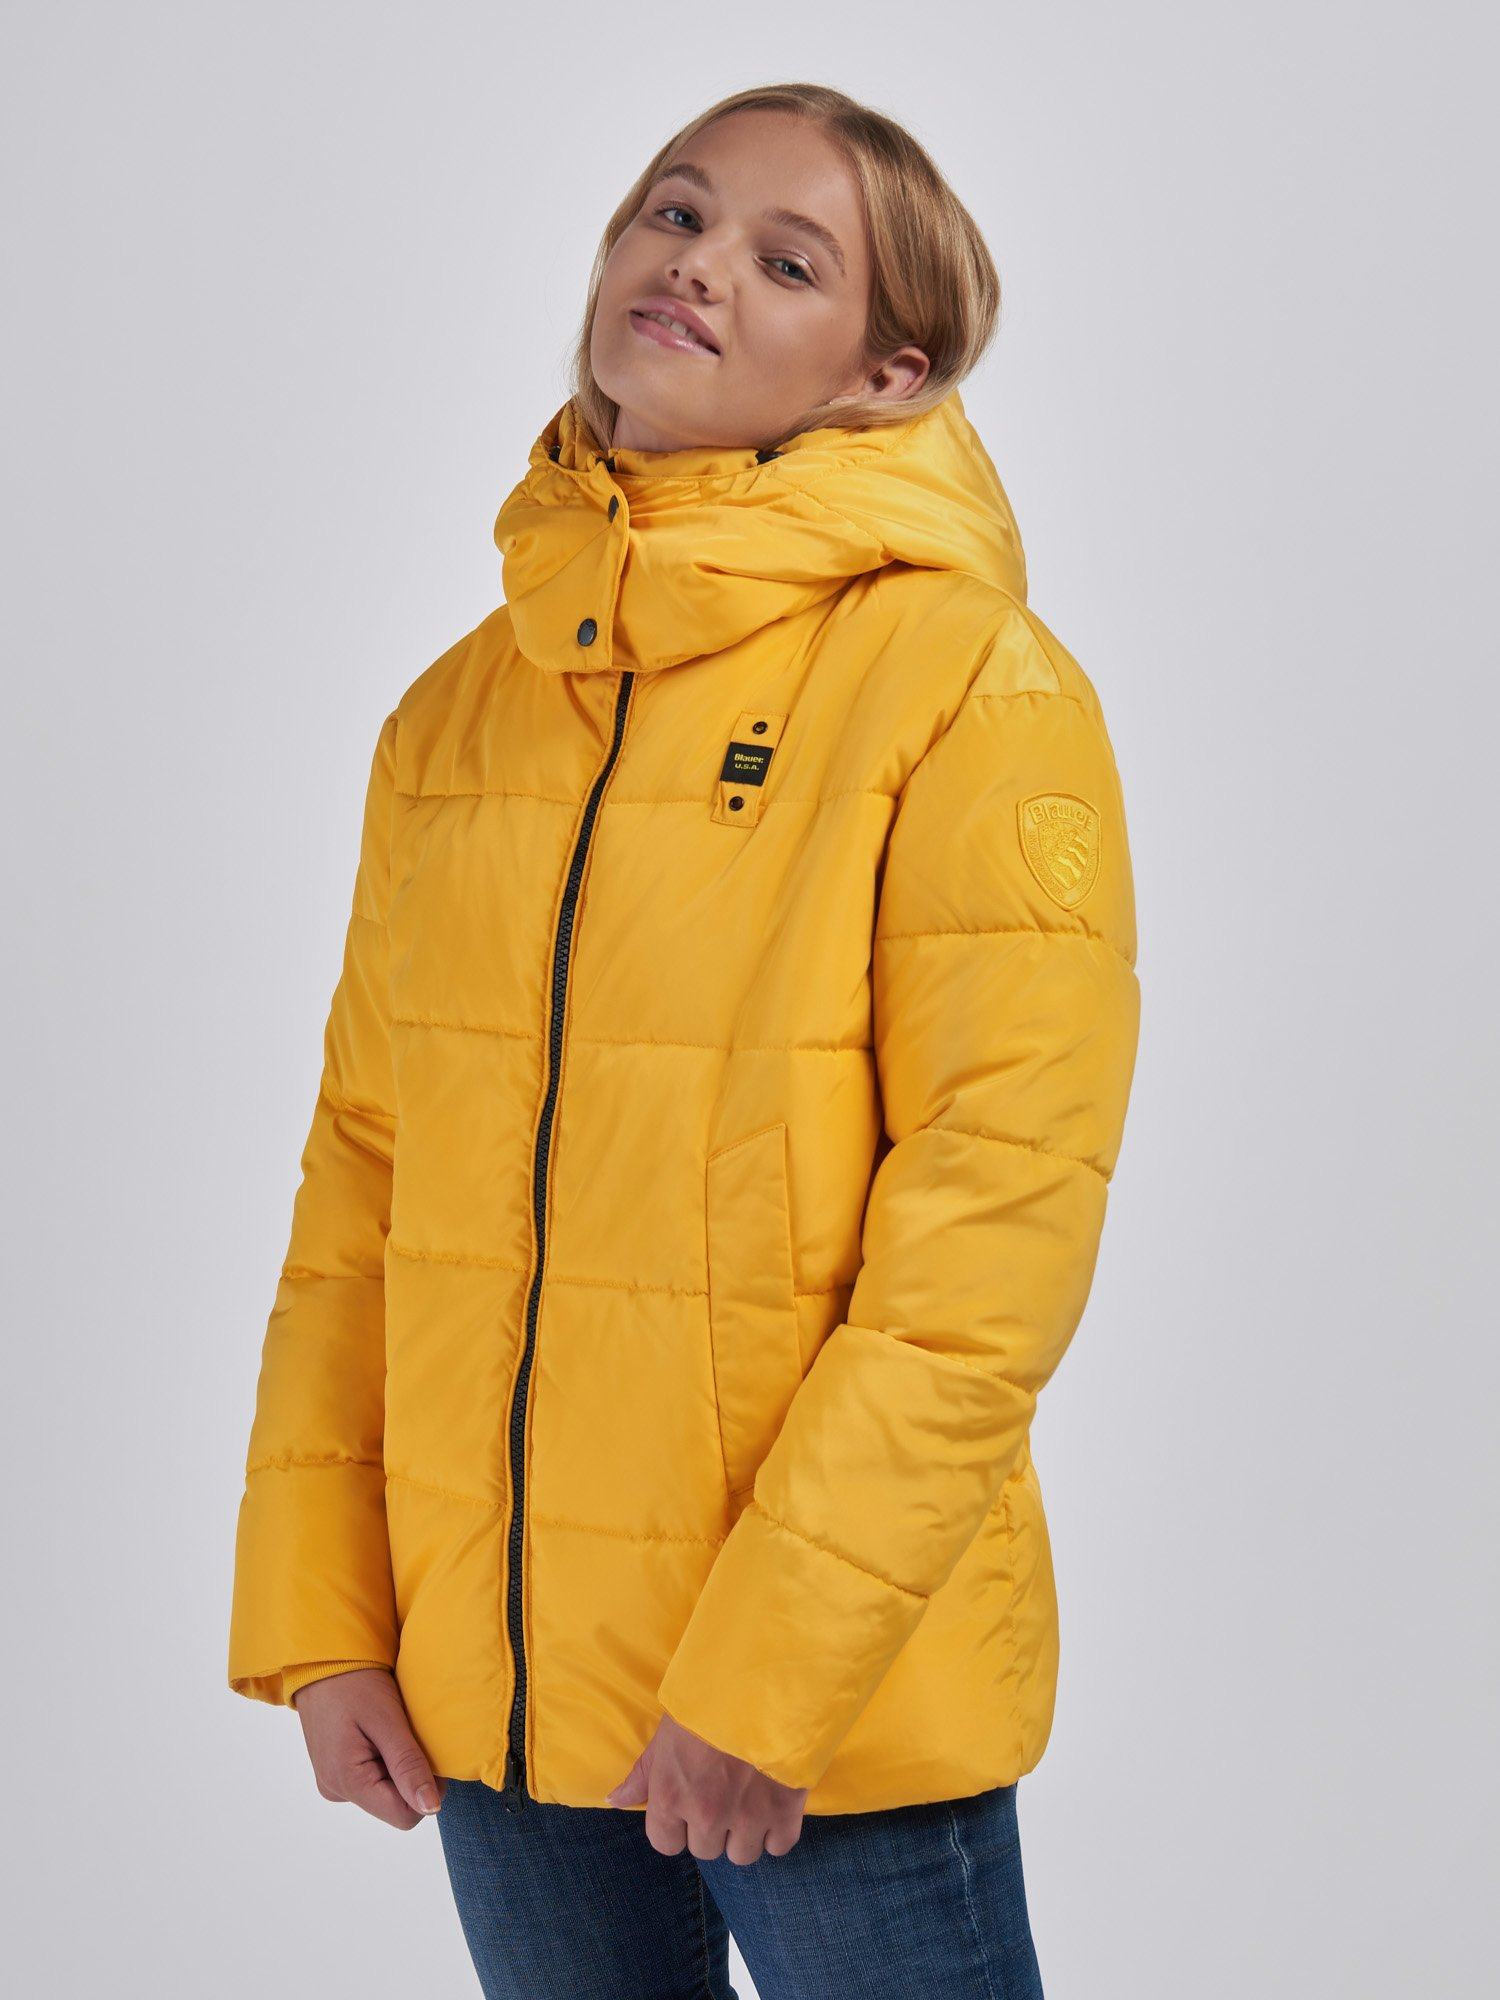 Blauer - MICHELLE RECYCLED LONG JACKET - Yellow Vivid - Blauer